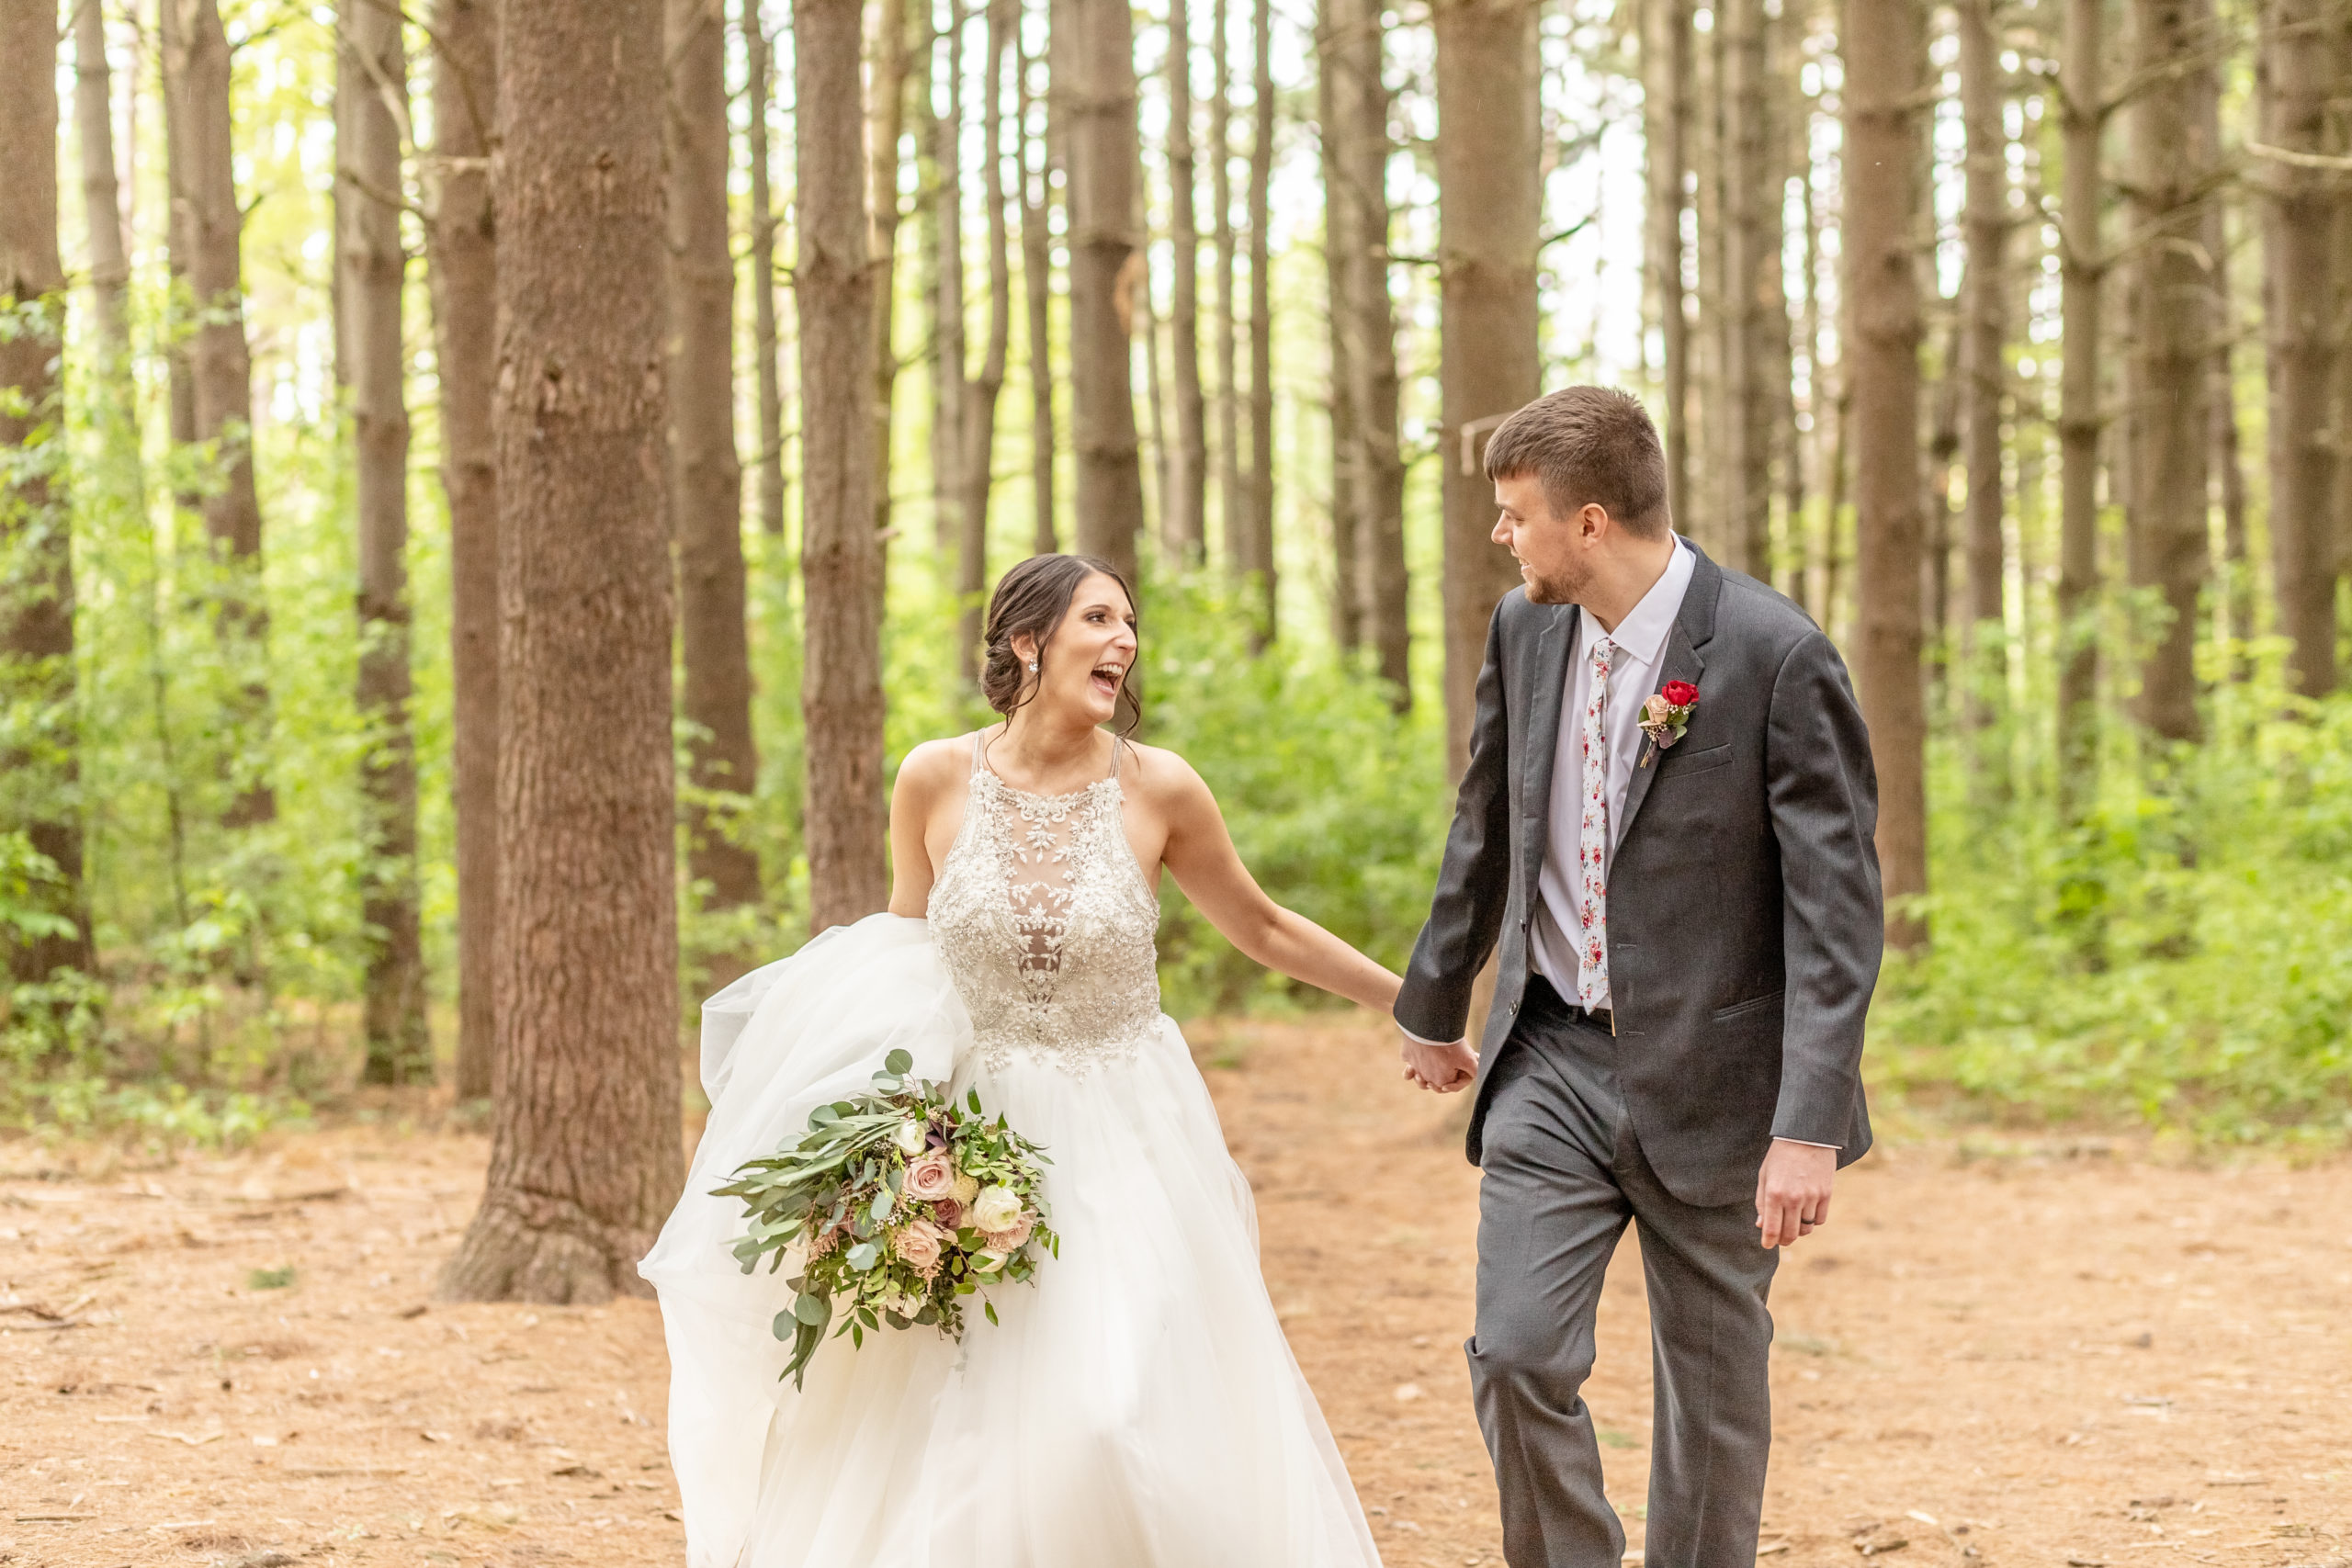 bride and groom, halter neck wedding dress, bouquet, grey suit, red rose boutonniere, laughing